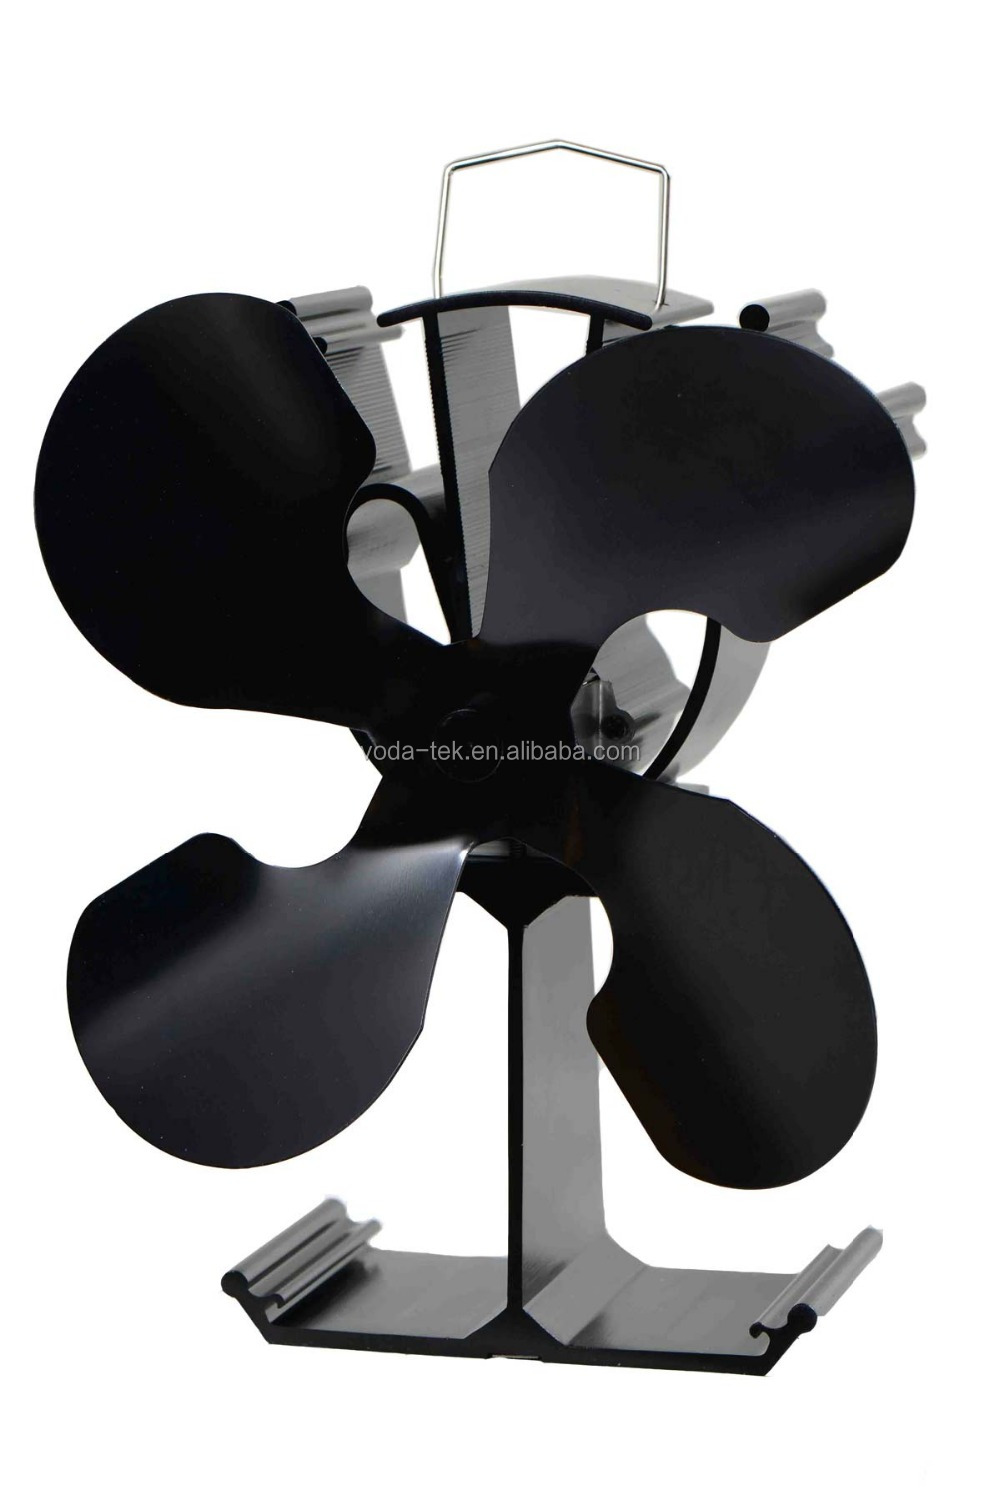 Heat powered fans for wood stoves - Heat Powered Stove Fan Eco Friendly Wood Burning Stove Top Fan